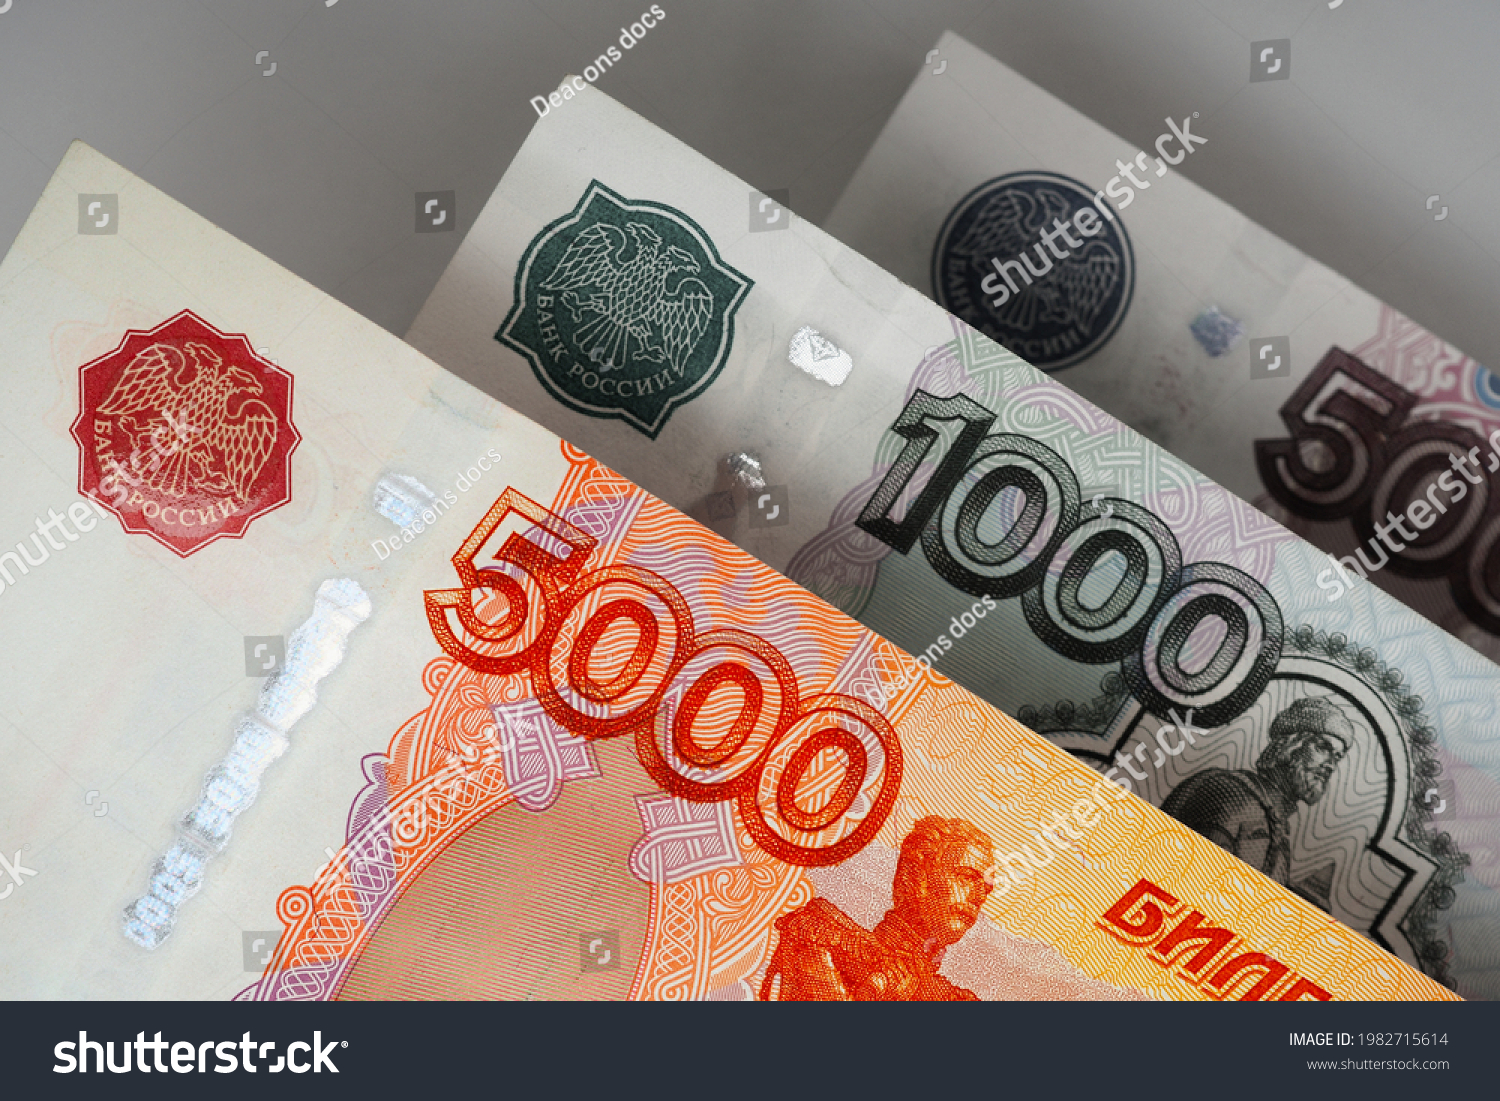 Russian banknotes 5000, 1000 and 500 rubles close up. Bright expressive illustration about economy and money of Russia. Nearest bill is highlighted in vivid color, other notes are pale. Macro #1982715614